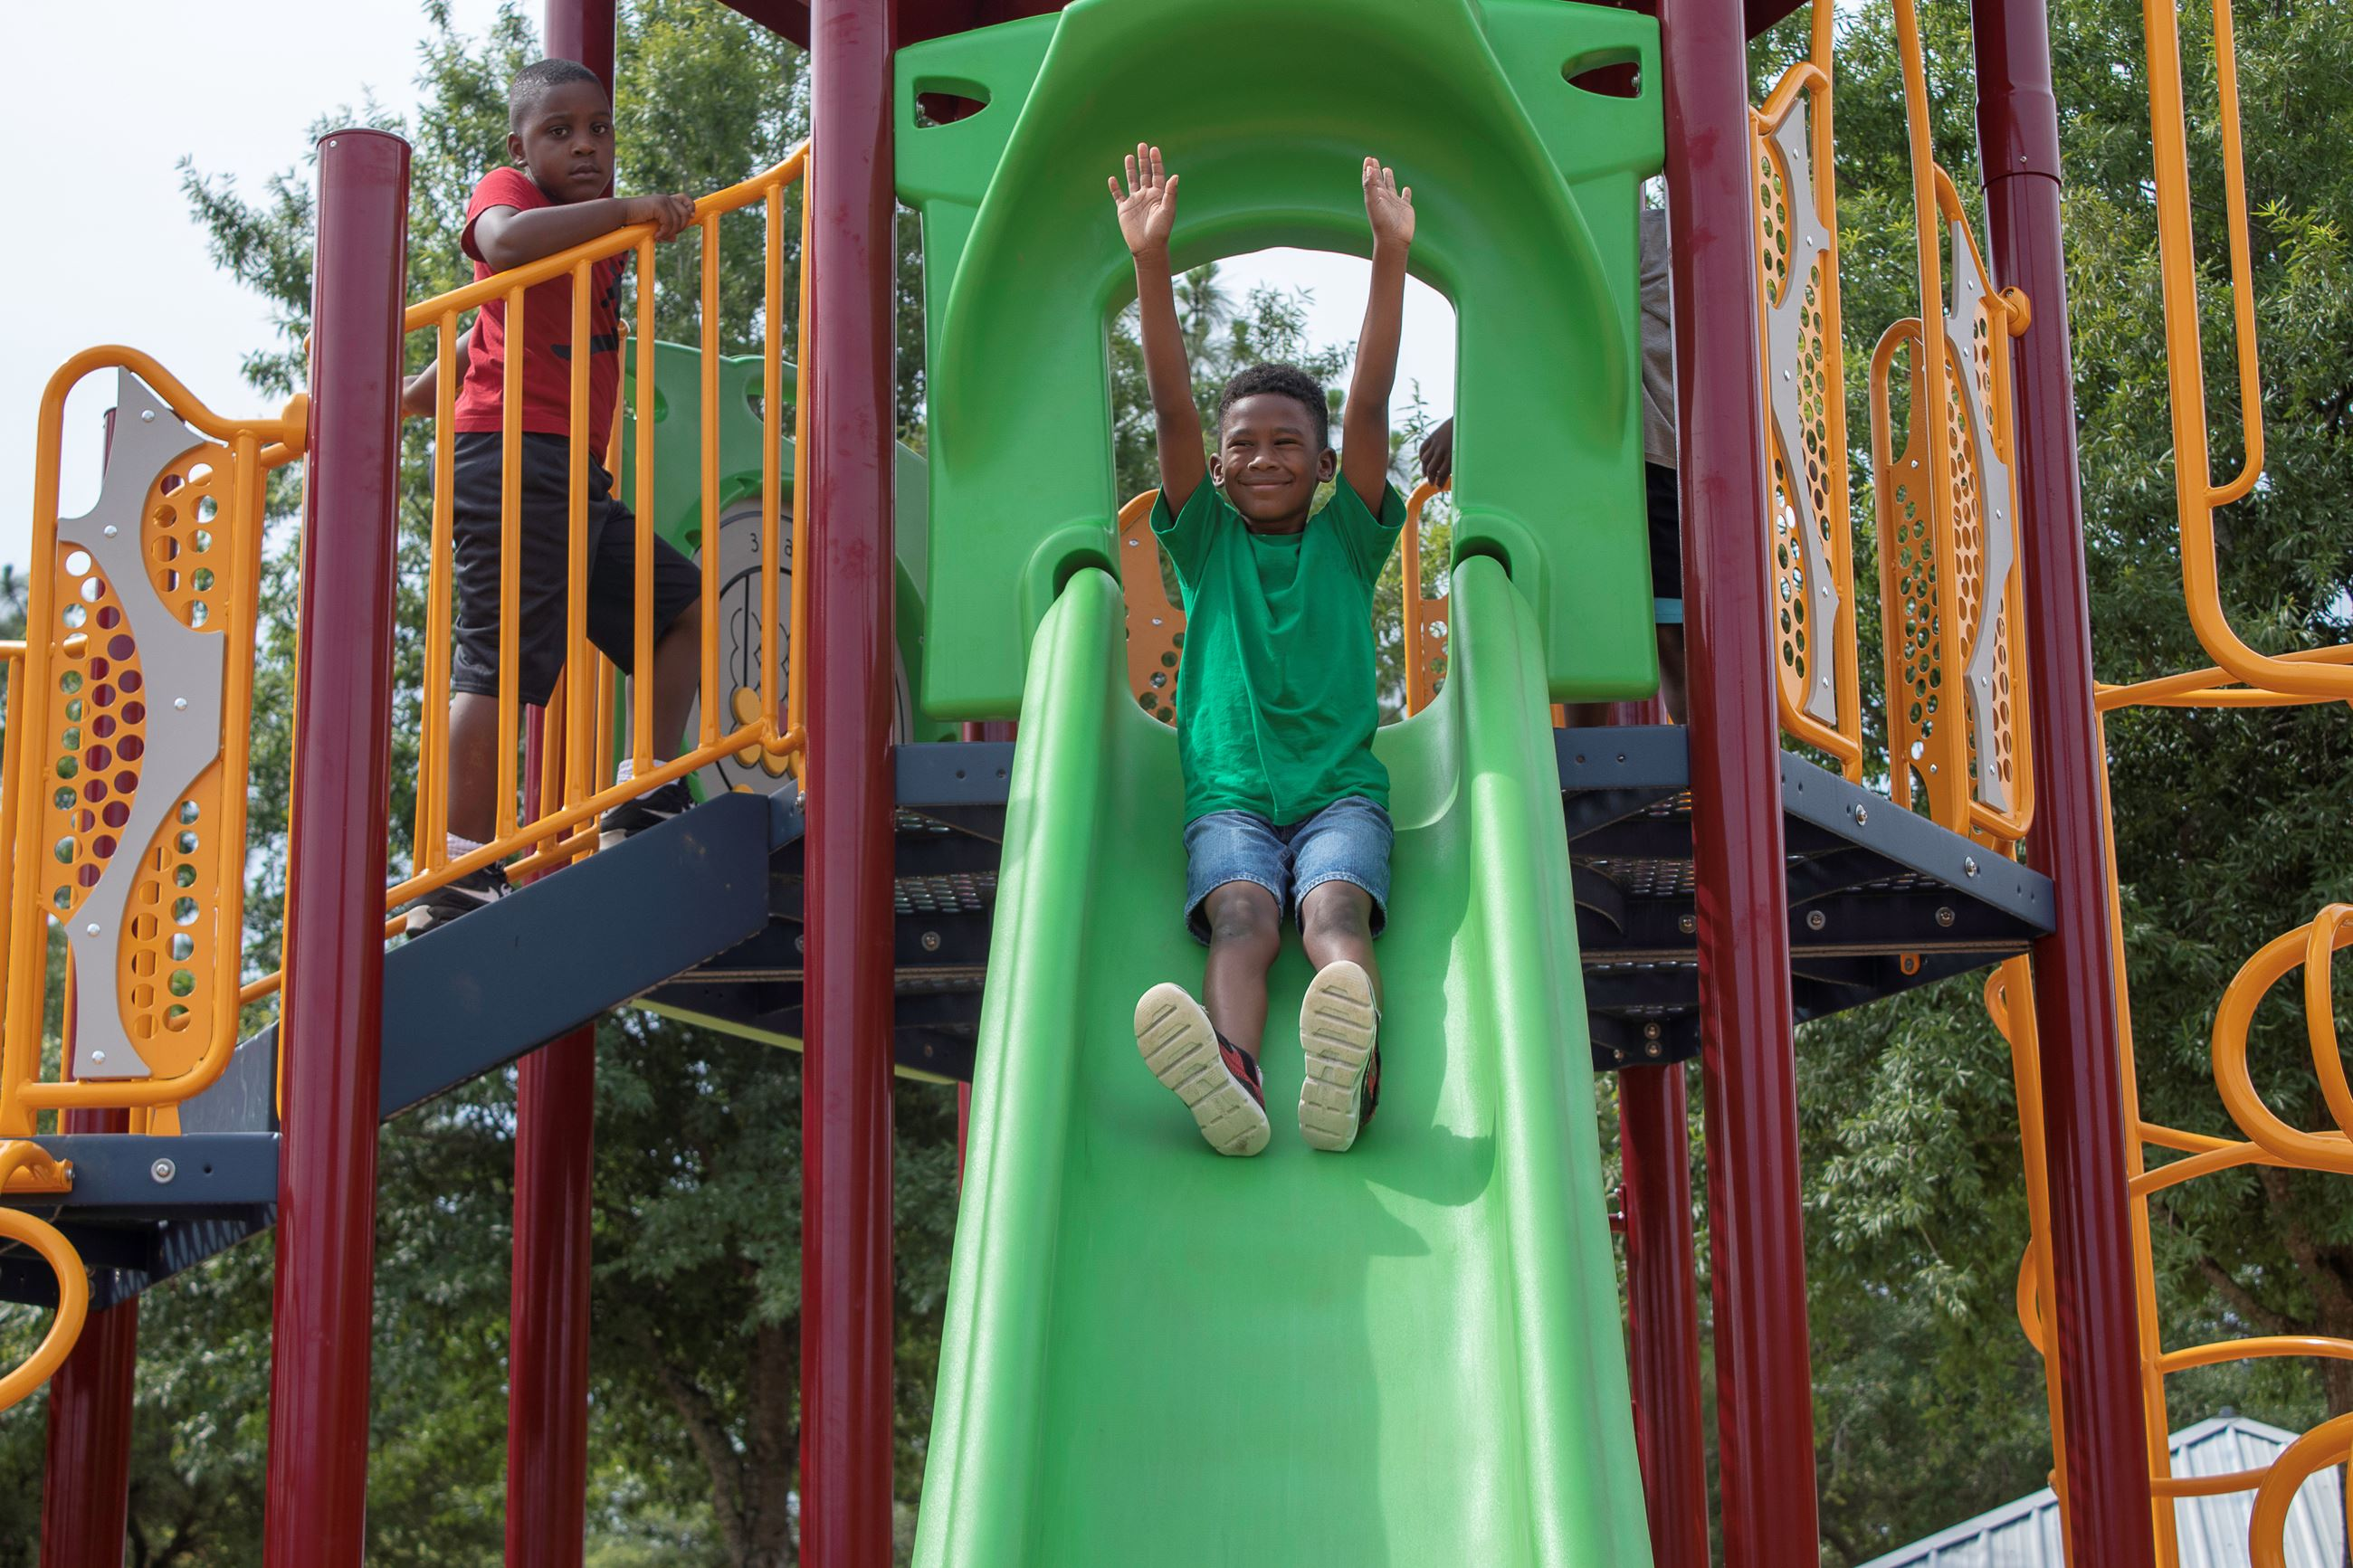 An image of a child sliding down a green slide.